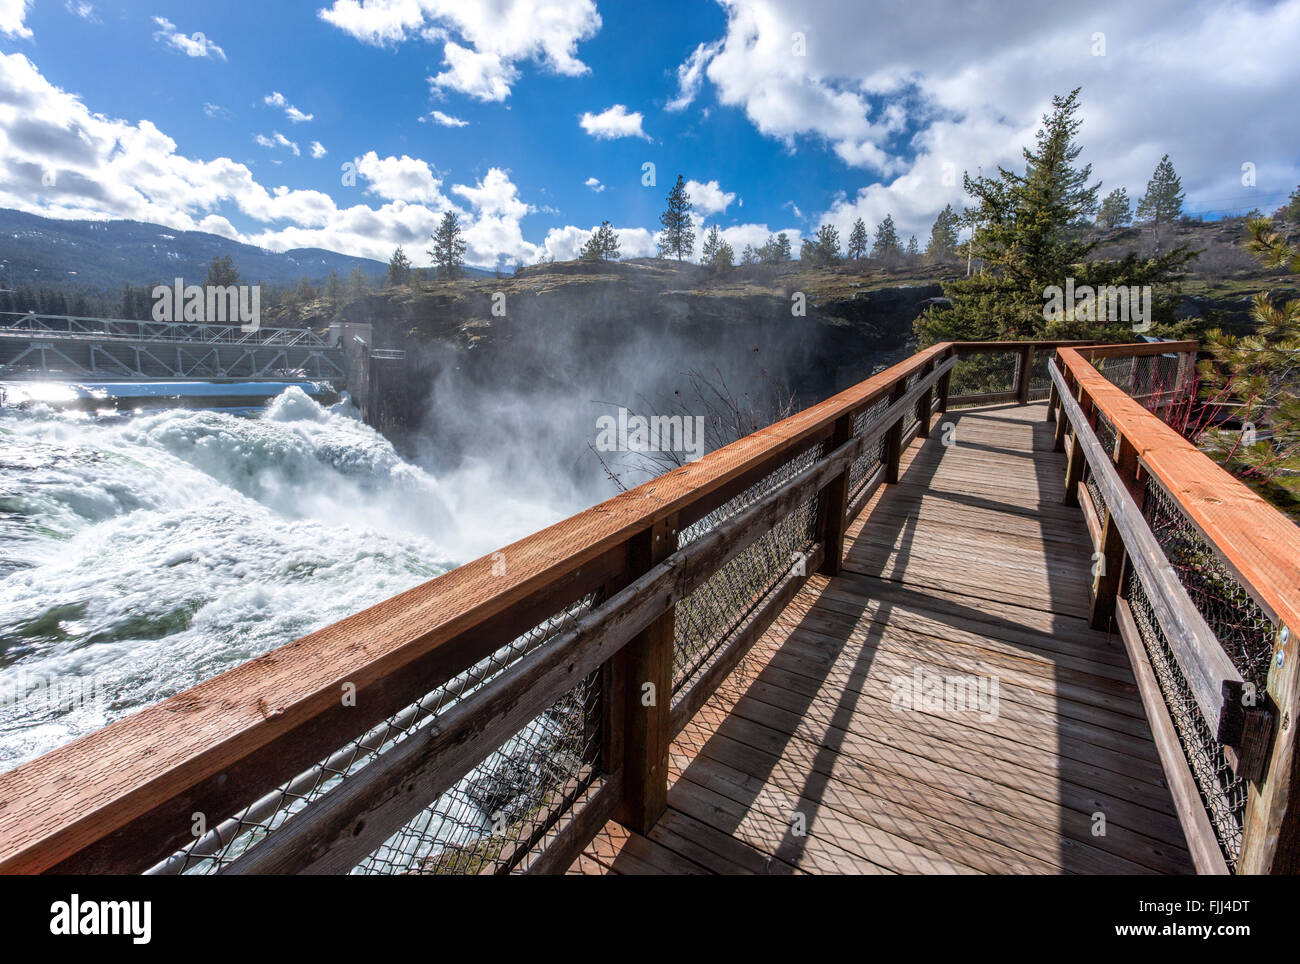 The boardwalk that lets people see the Post Falls Dam in Idaho. - Stock Image